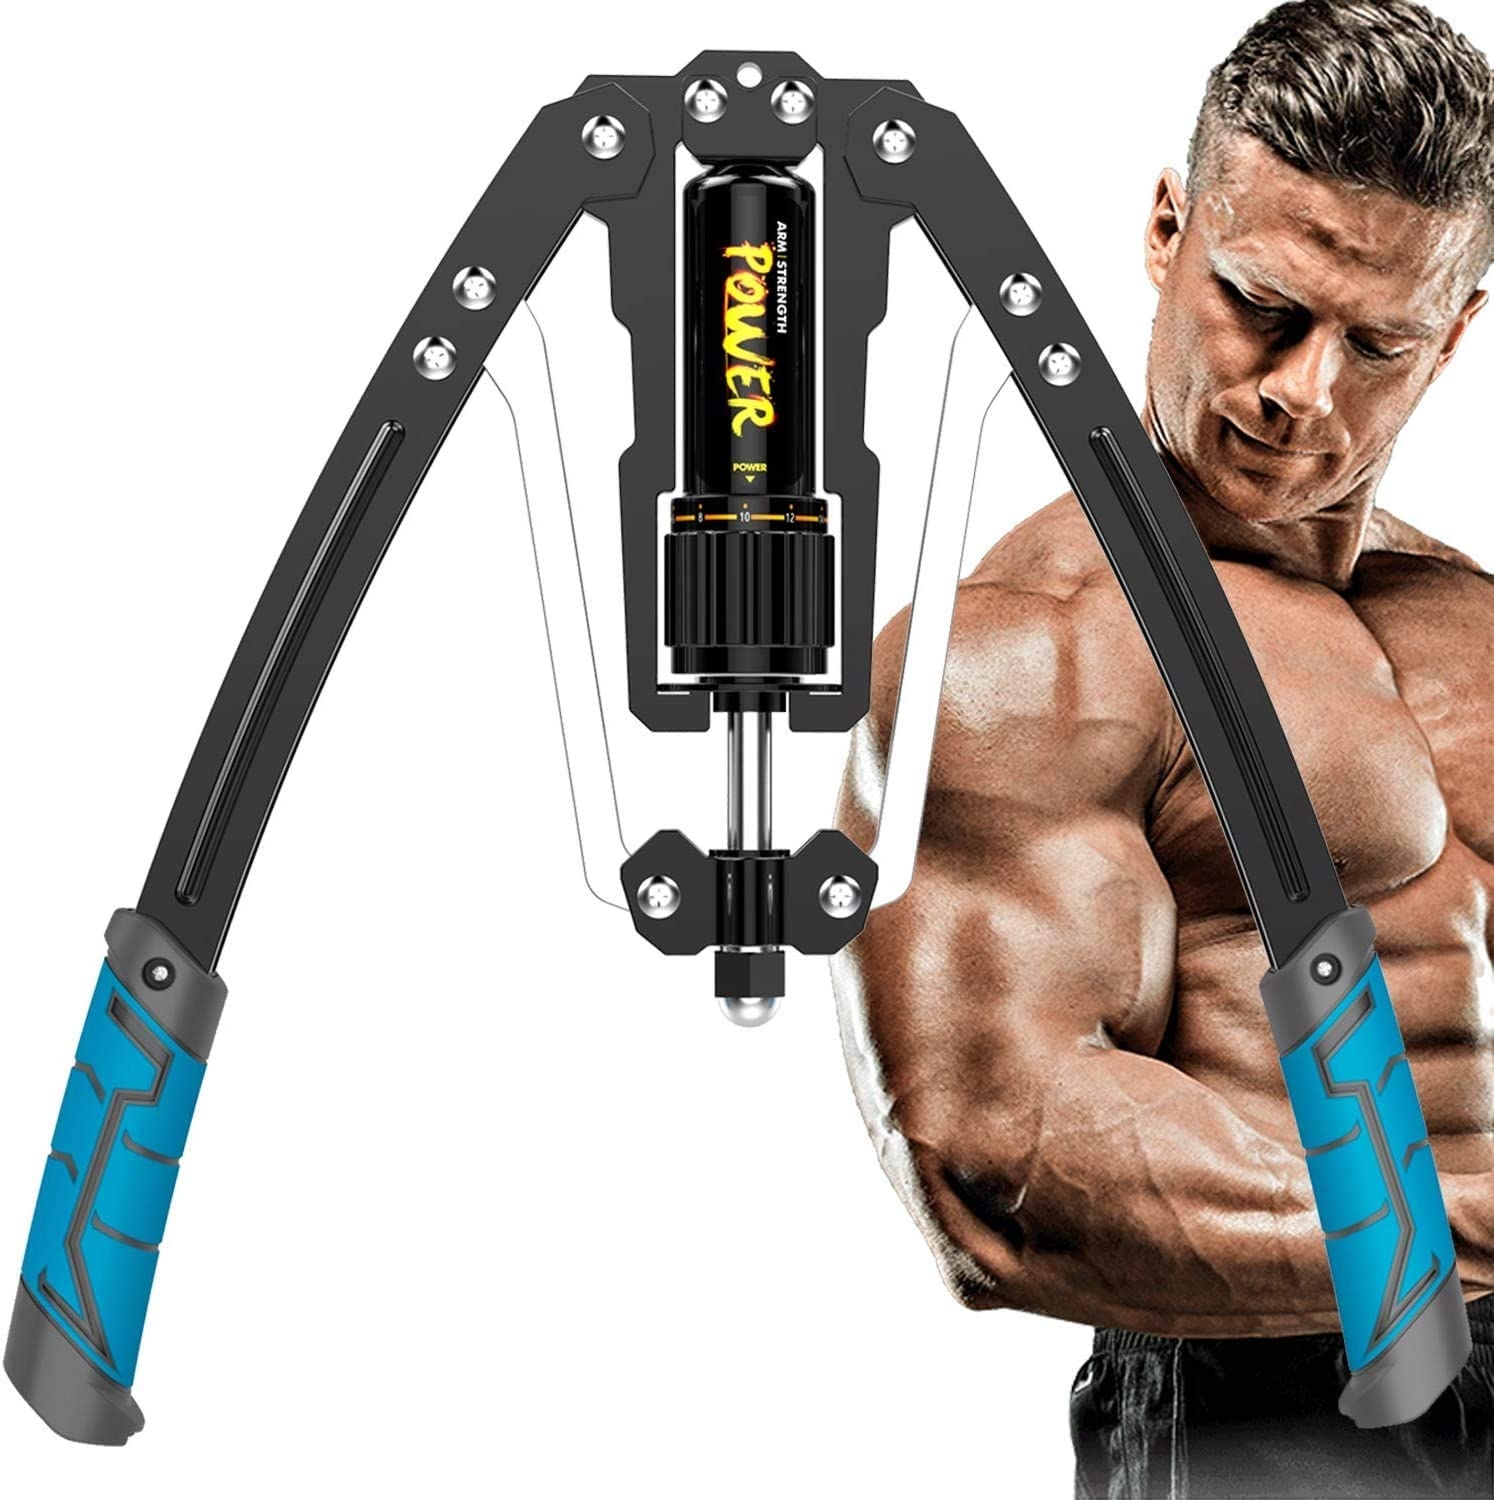 Upgraded 4th Generation Power Twister Arm Exerciser Arm Muscle Training Machine